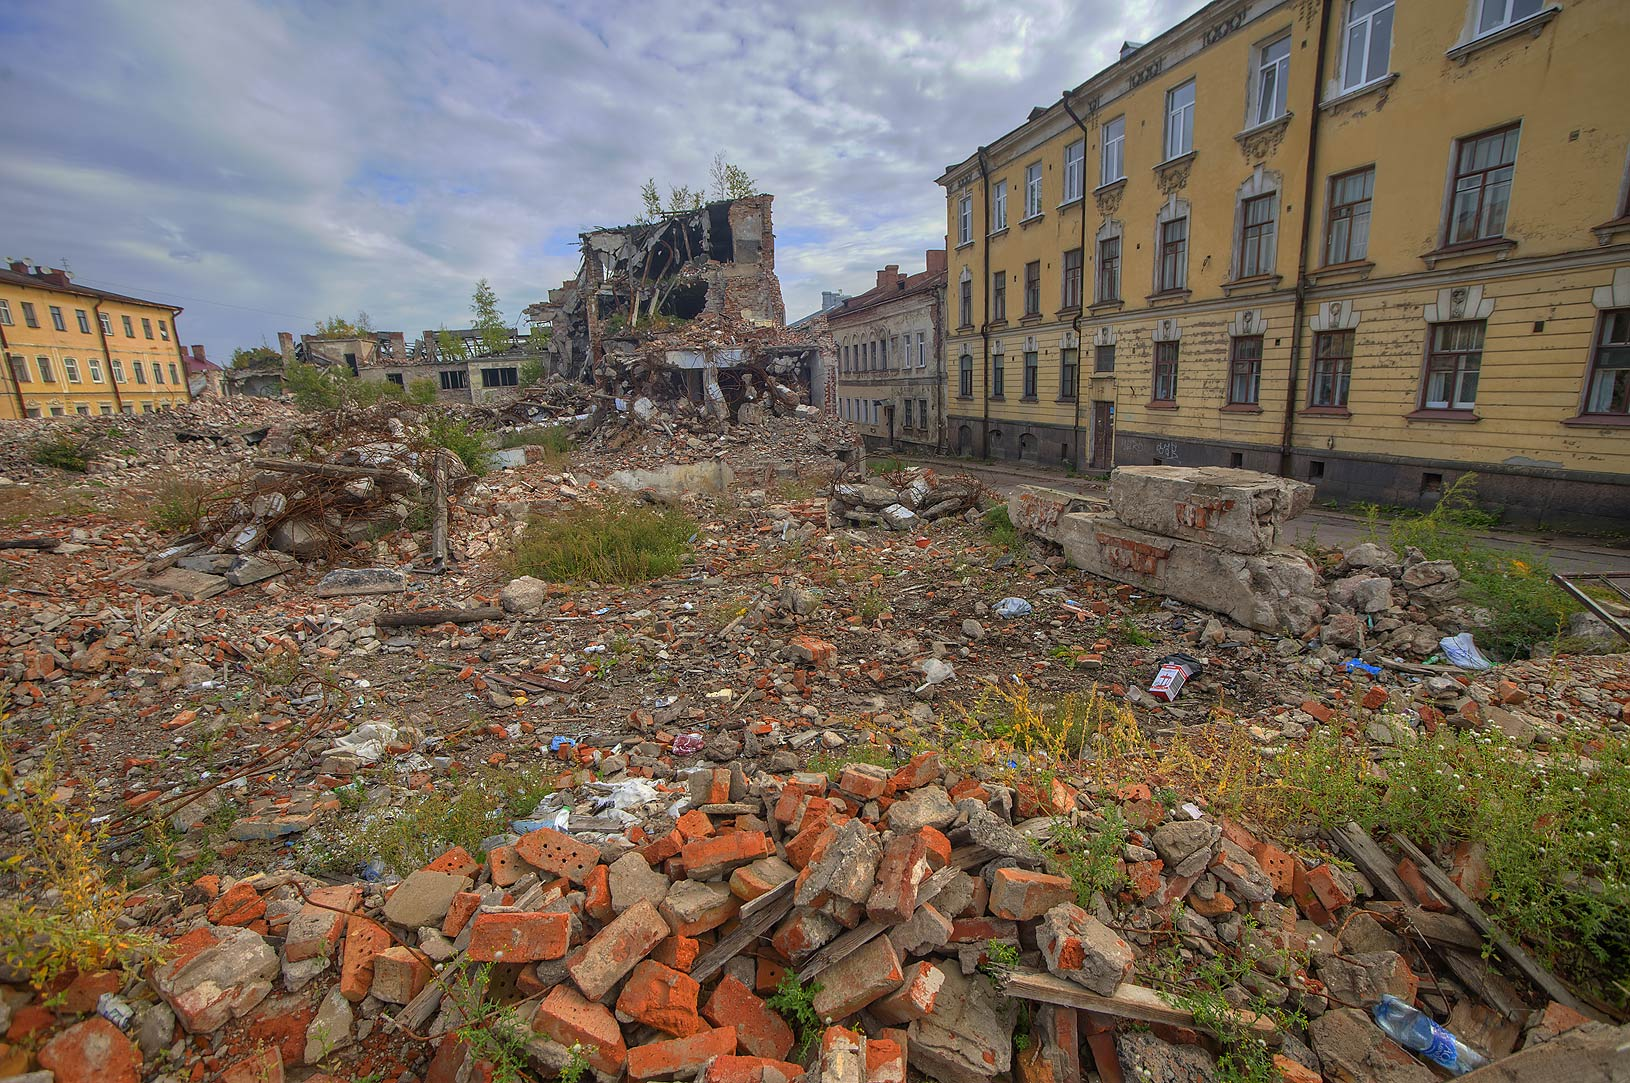 Old city quarter between Krasnoarmeyskaya and...under restoration). Vyborg, Russia